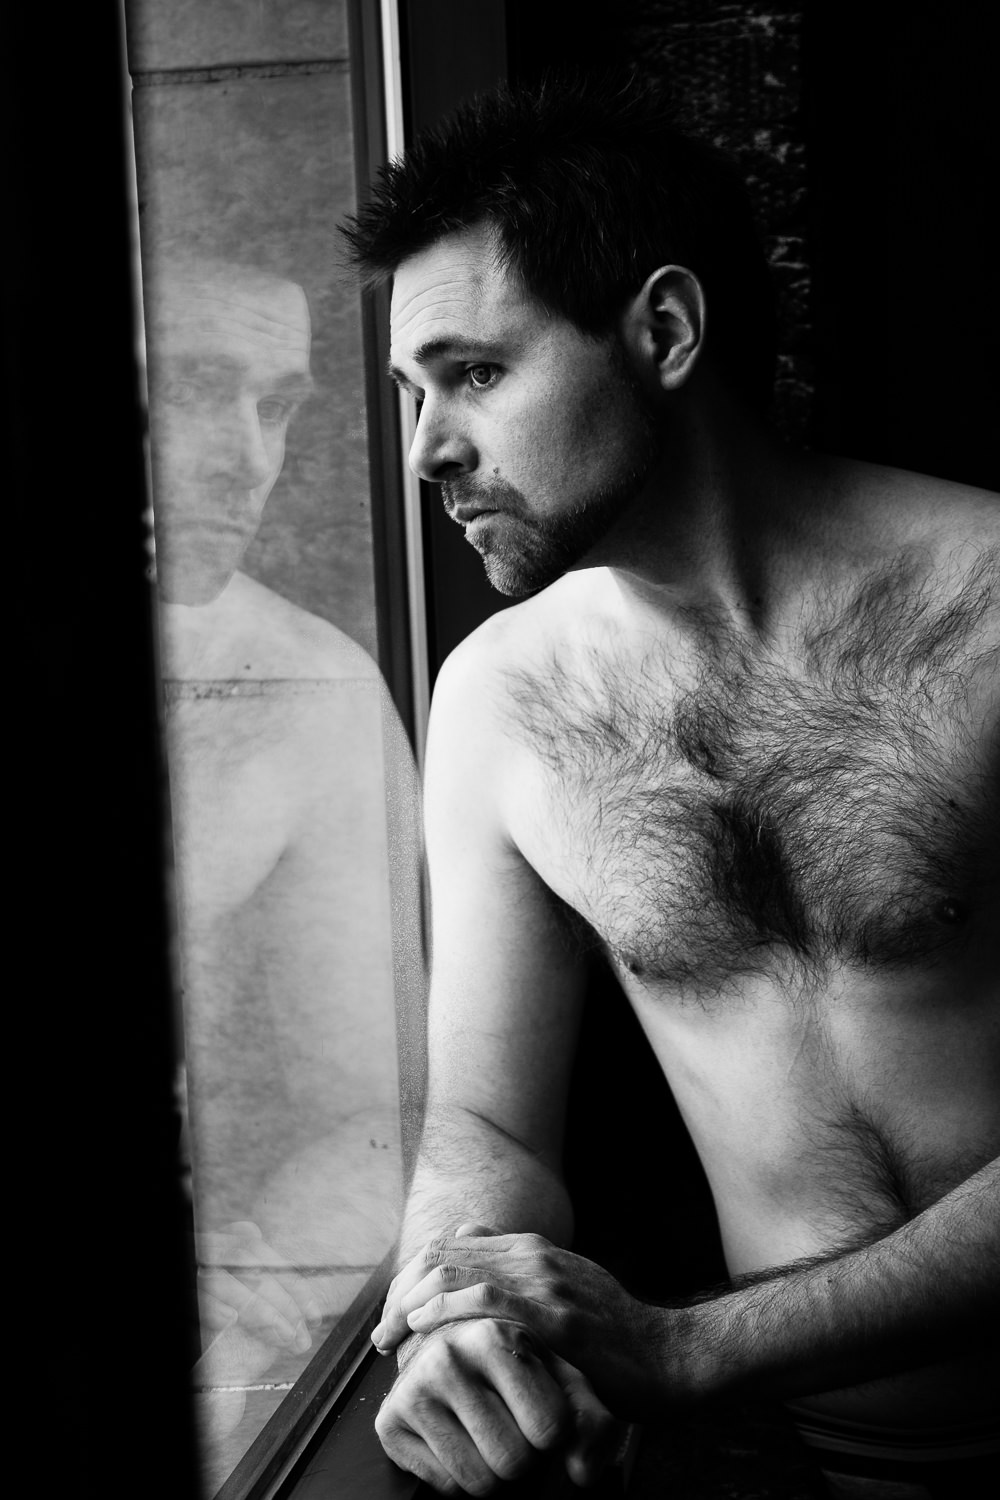 billings-montana-boudoir-man-window-reflection.jpg